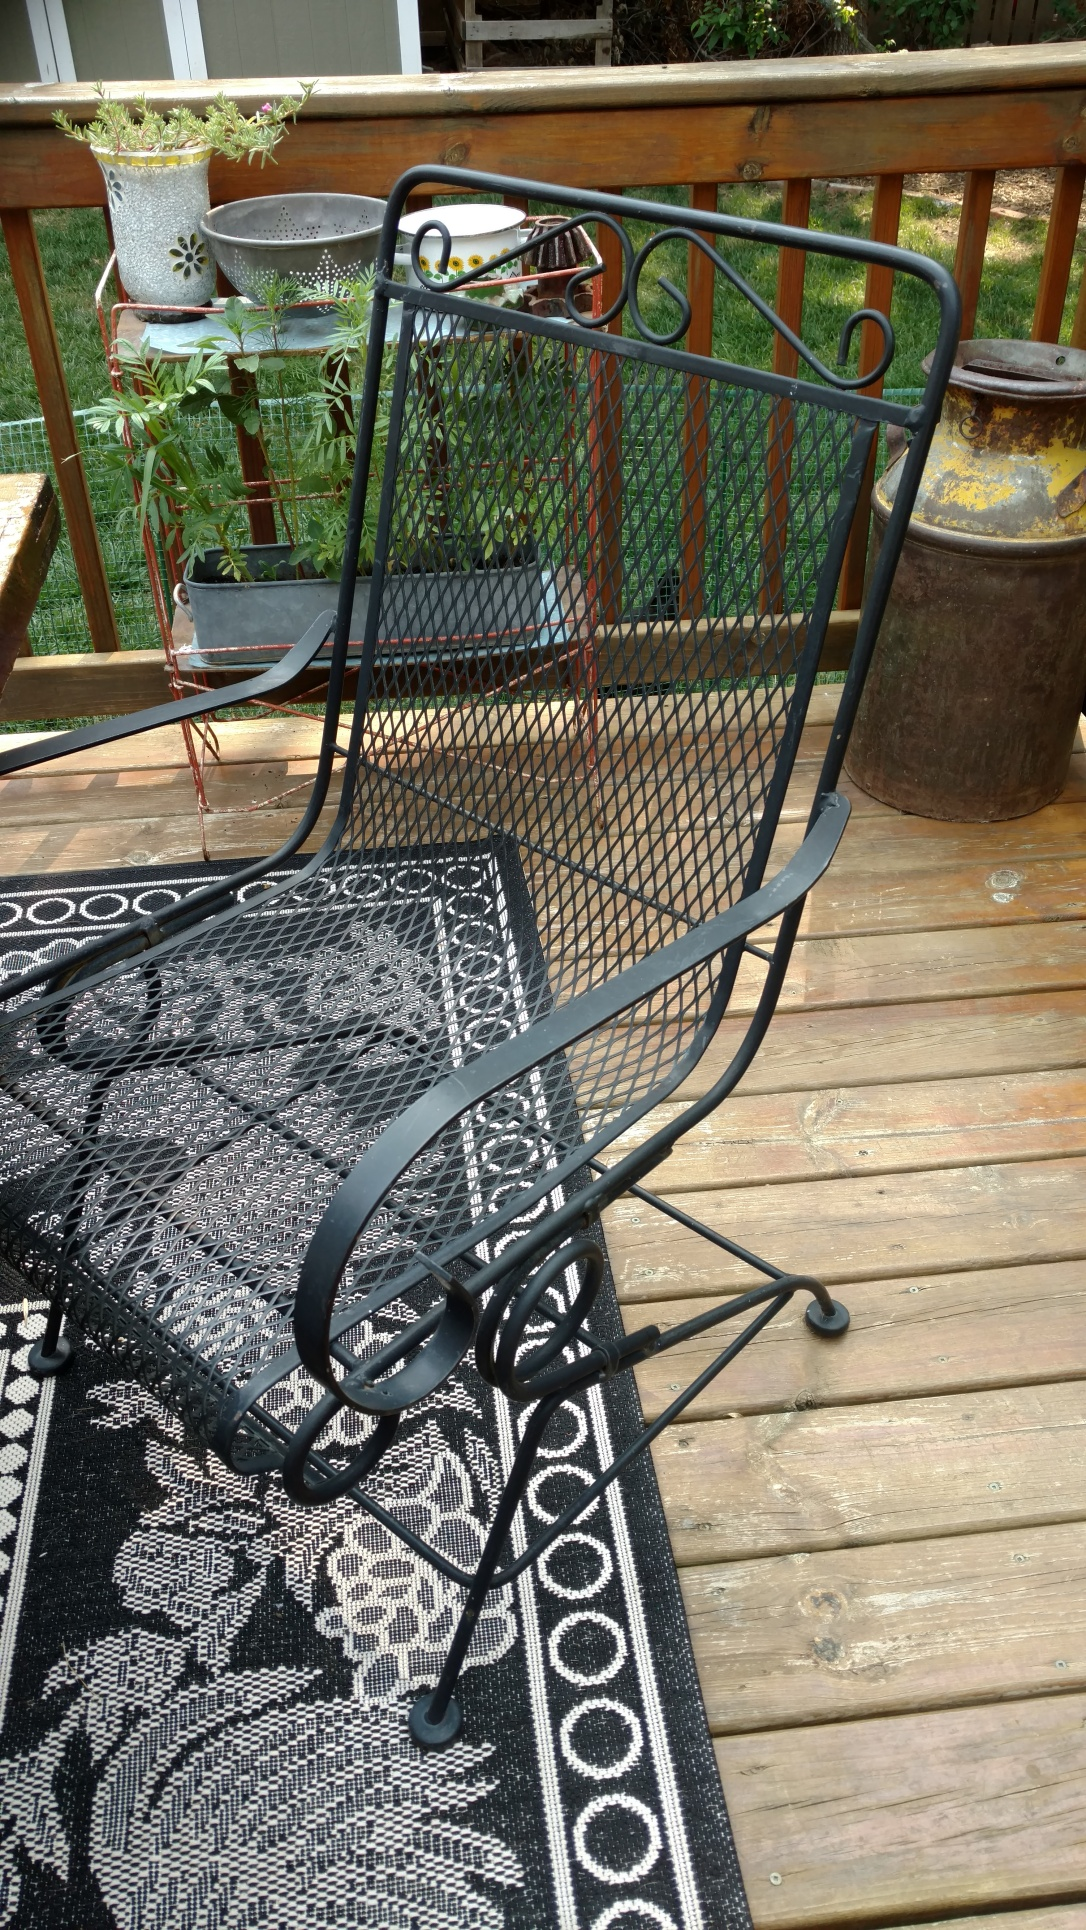 patio chair2.jpg